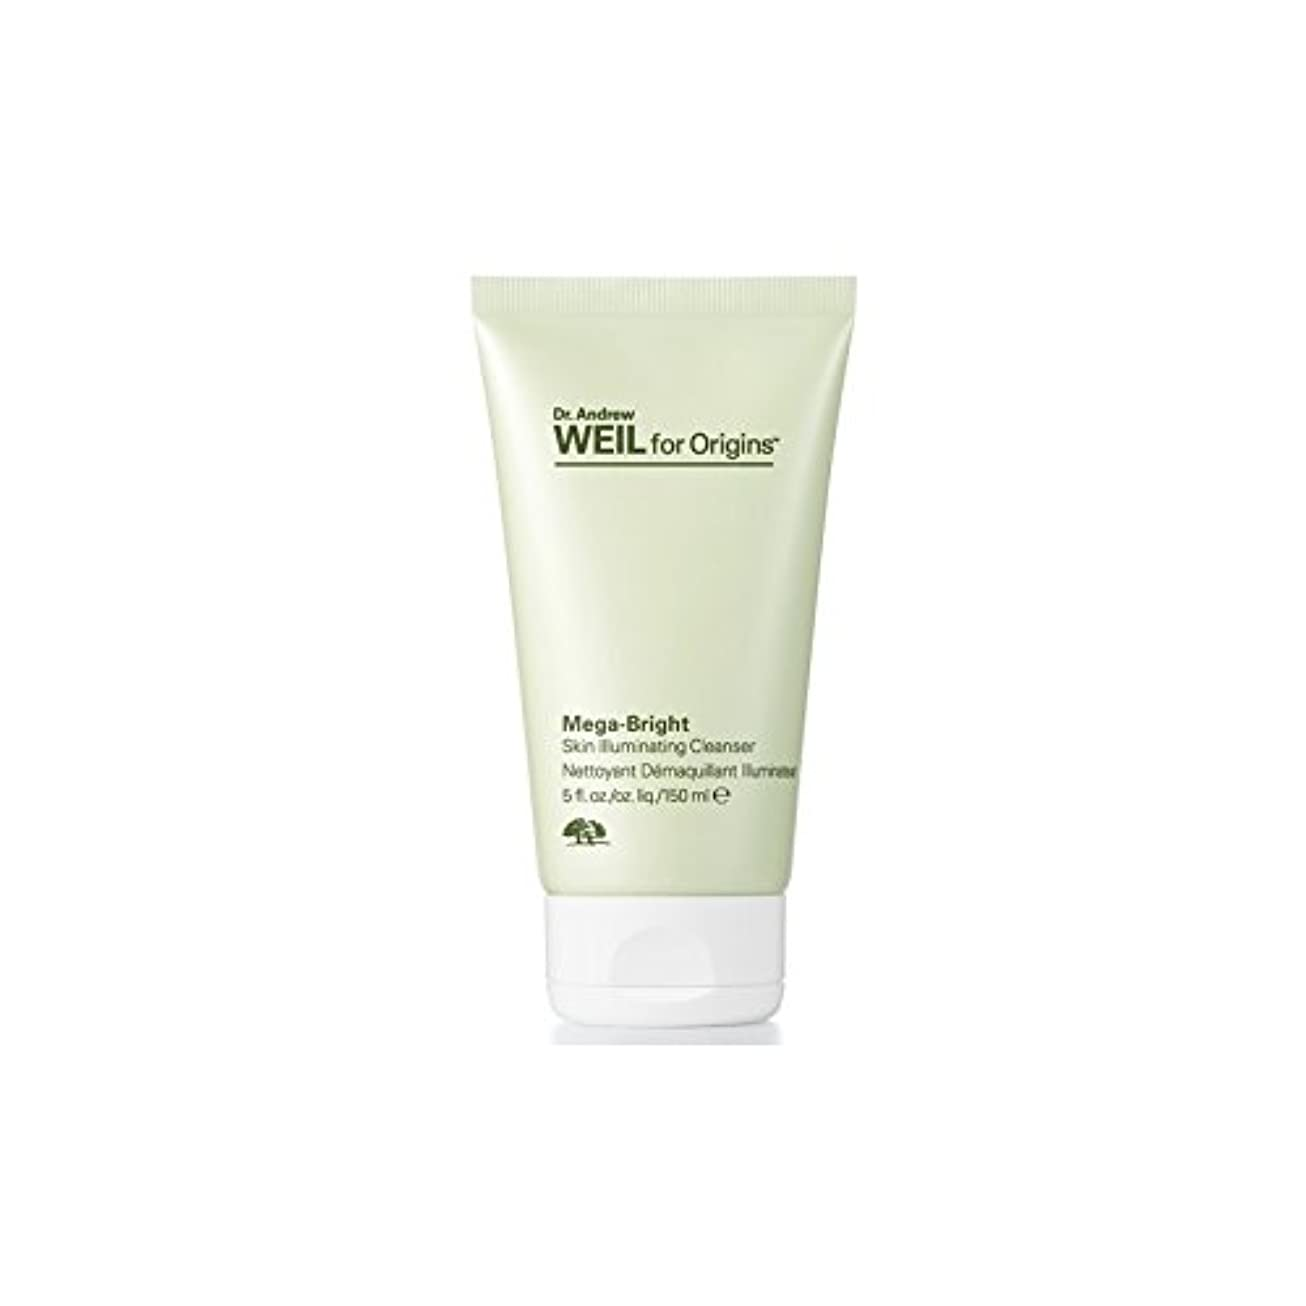 到着するまっすぐにする有望Origins Dr. Andrew Weil For Origins? Mega-Bright Skin Illuminating Cleanser 150ml (Pack of 6) - 起源アンドルー?ワイルクレンザー...